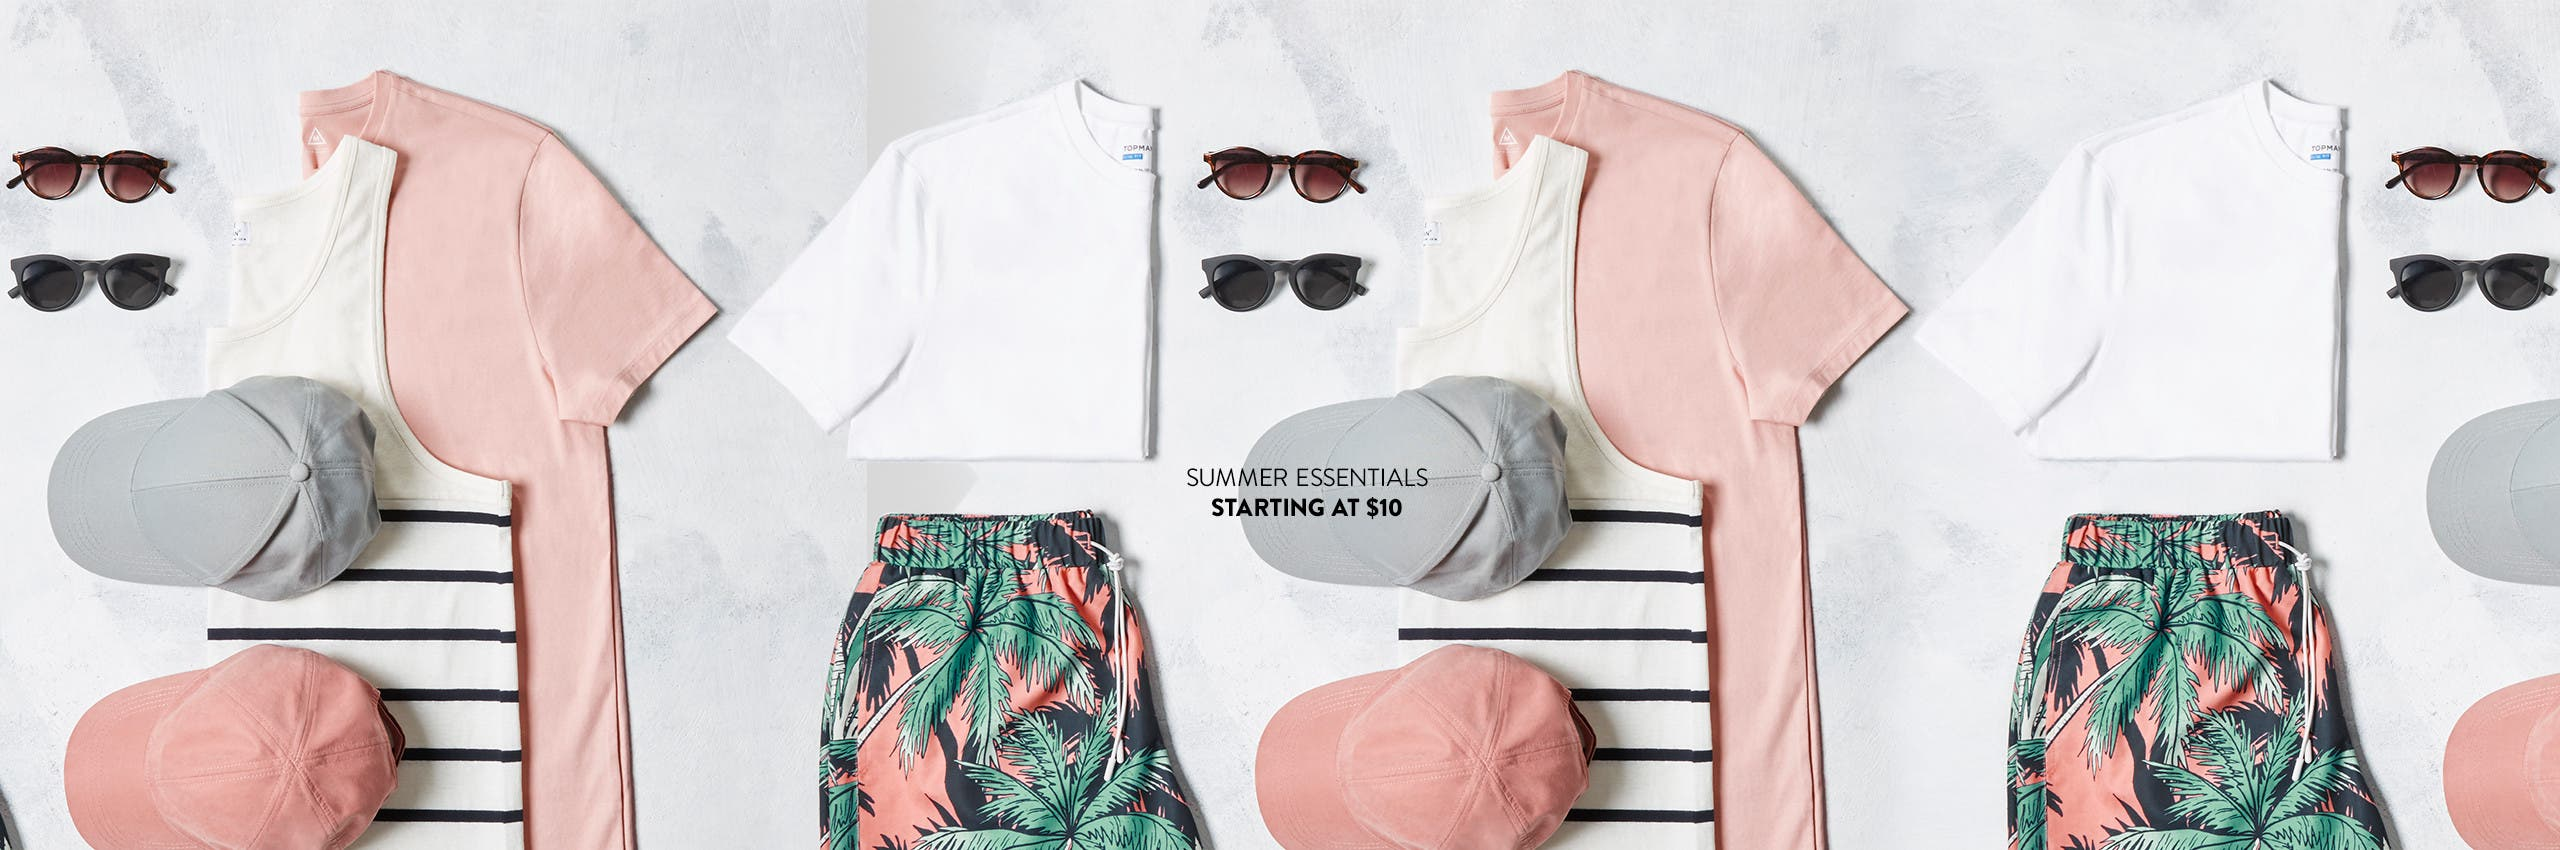 Summer essentials starting at $10.